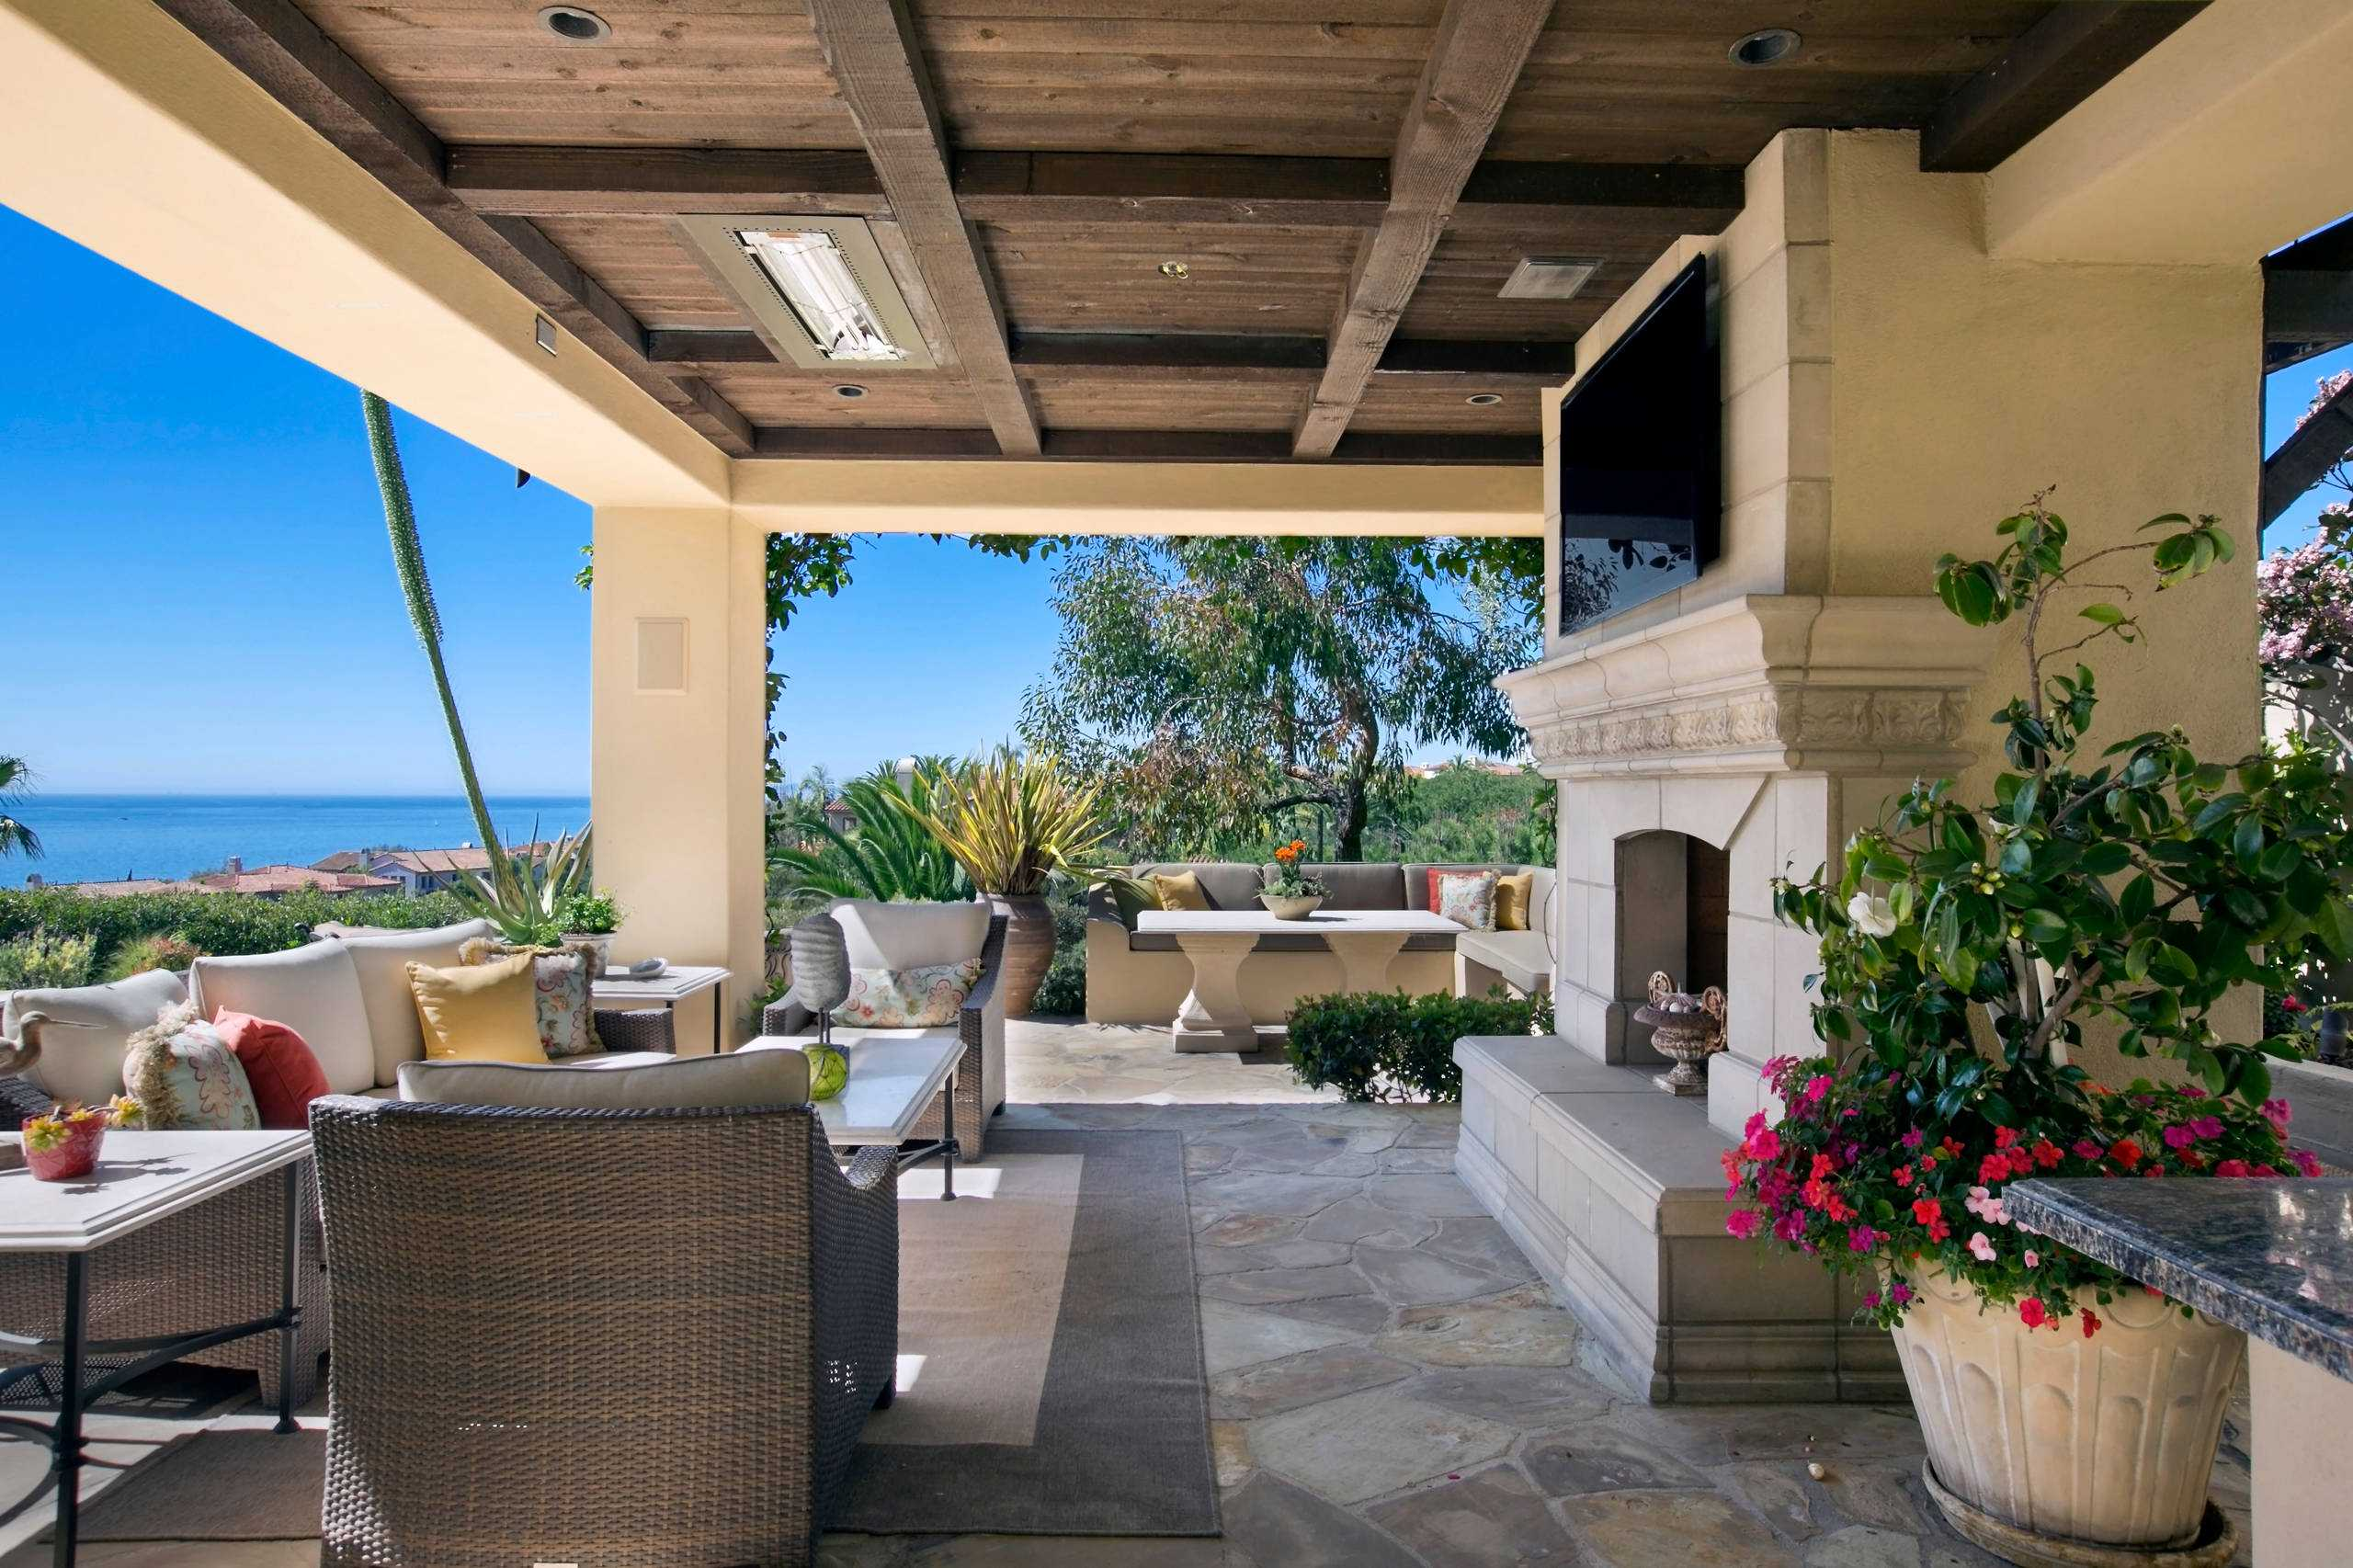 16 Beautiful Mediterranean Patio Designs That Will ... on Patios Designs  id=64211